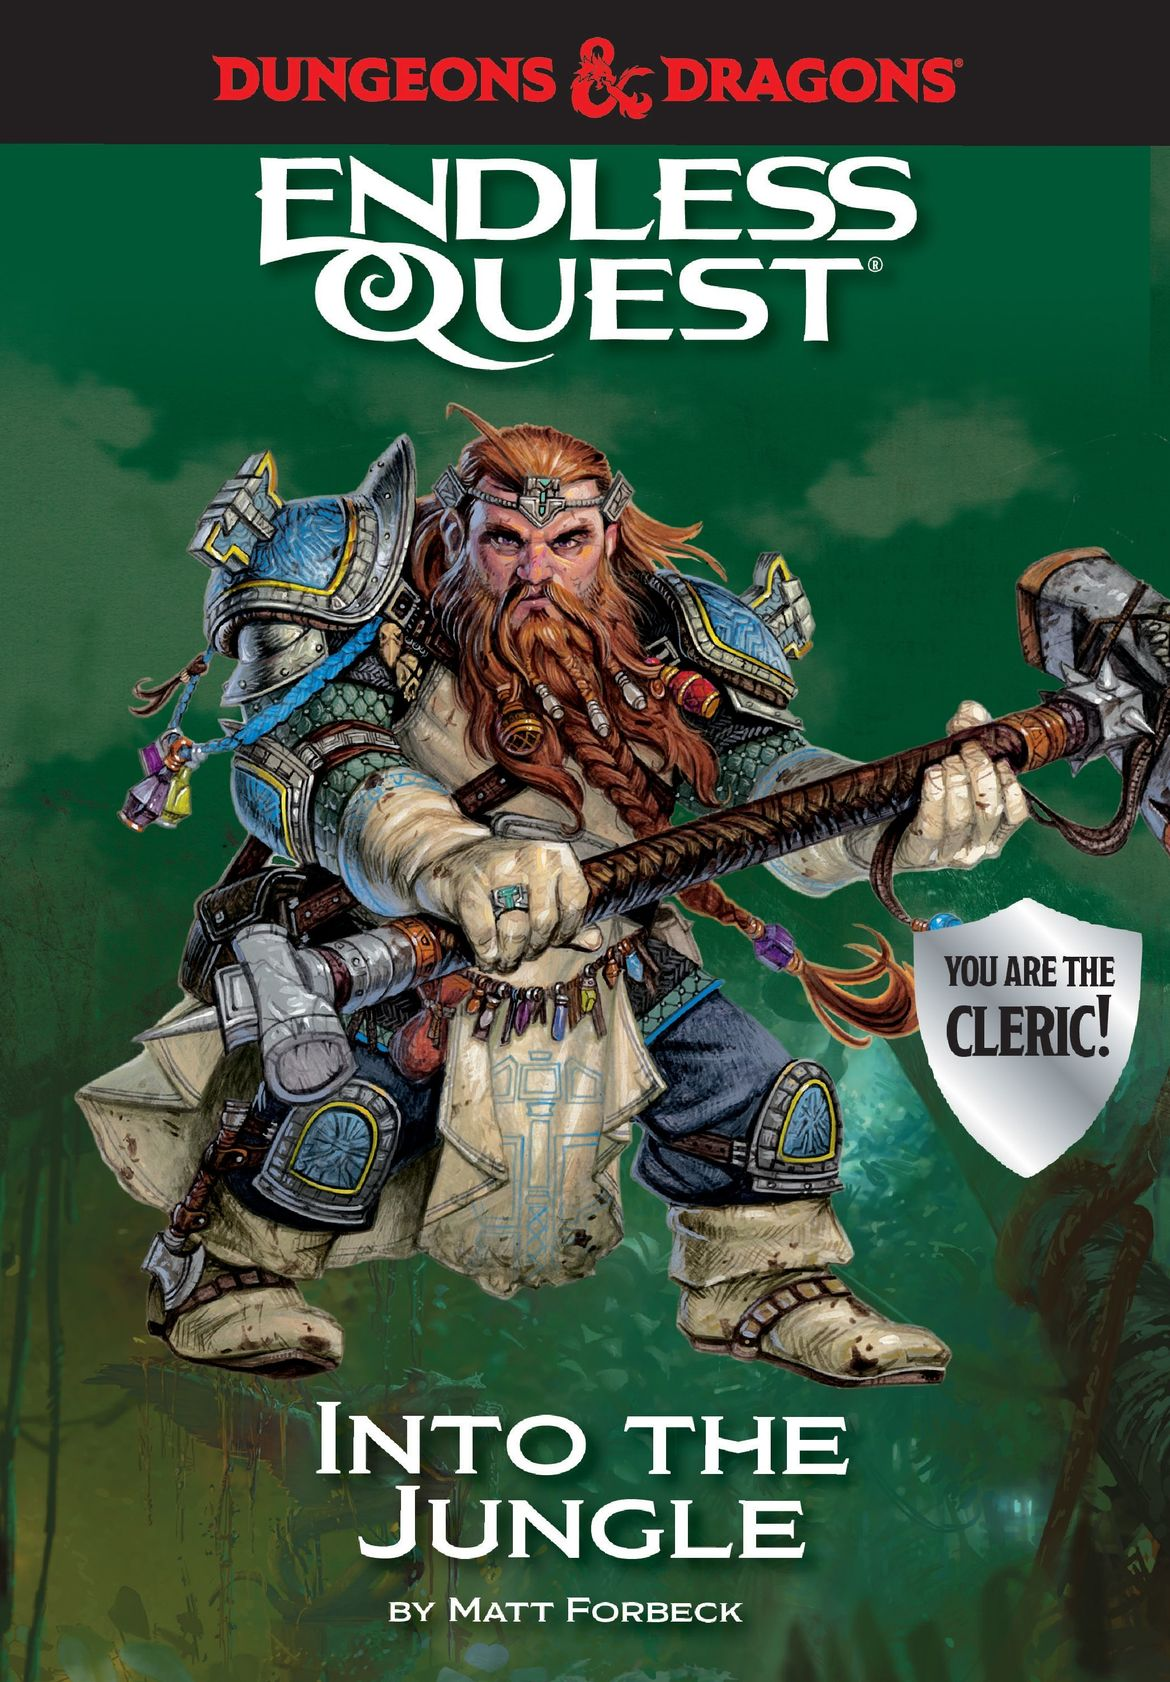 Dungeons & Dragons Endless Quest: Into the Jungle